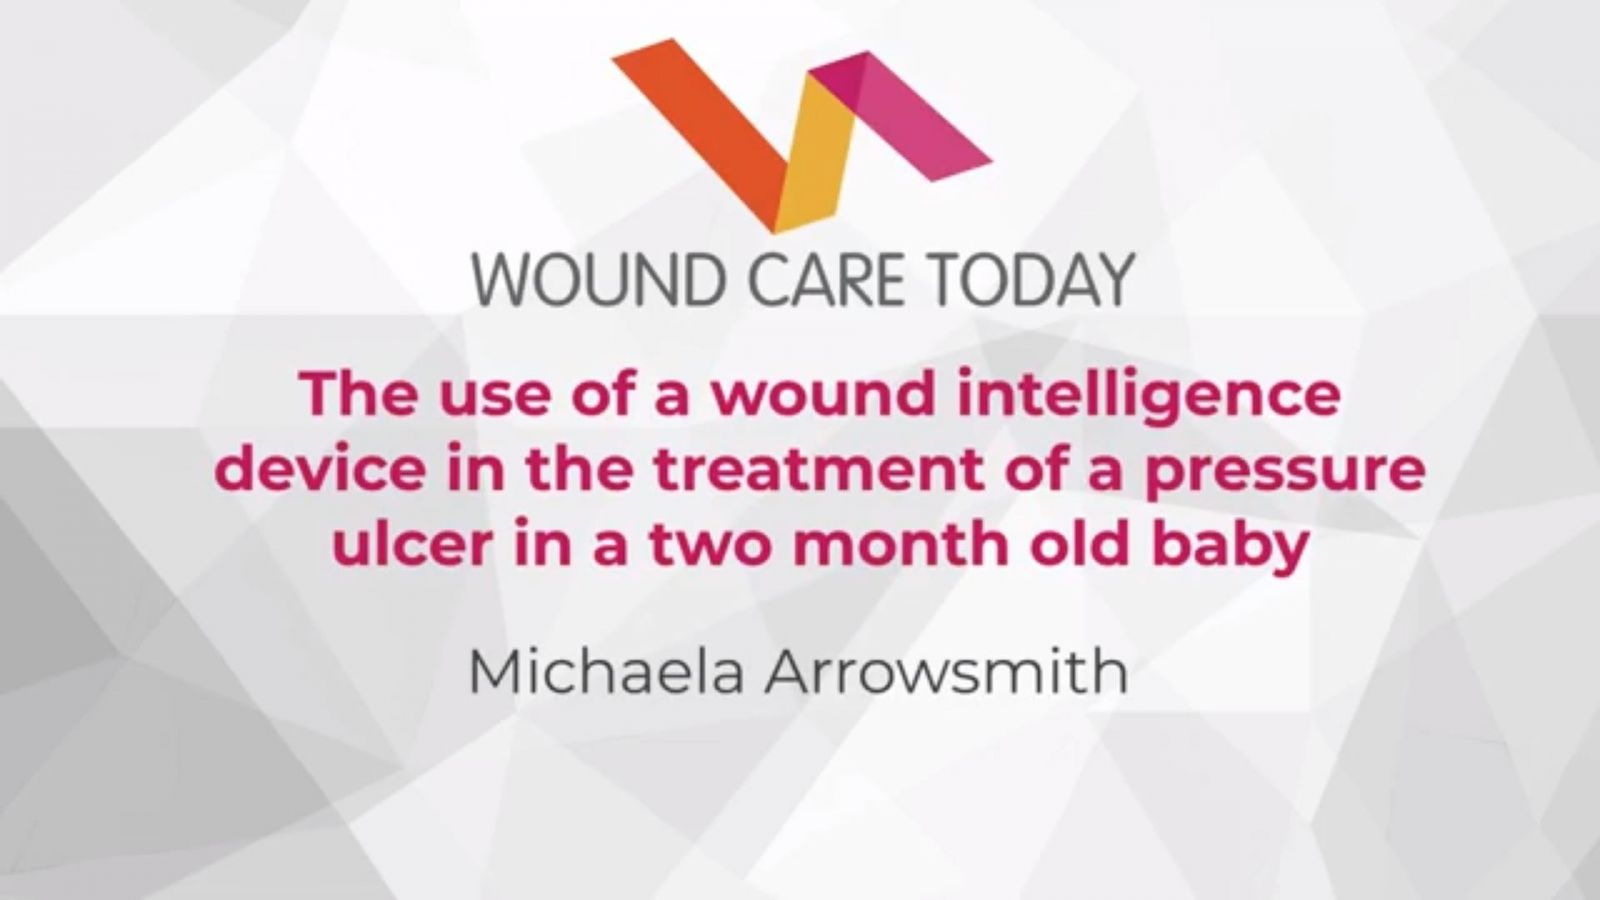 the-use-of-a-wound-intelligence-device-in-the-treatment-of-a-pressure-ulcer-in-a-two-month-old-baby